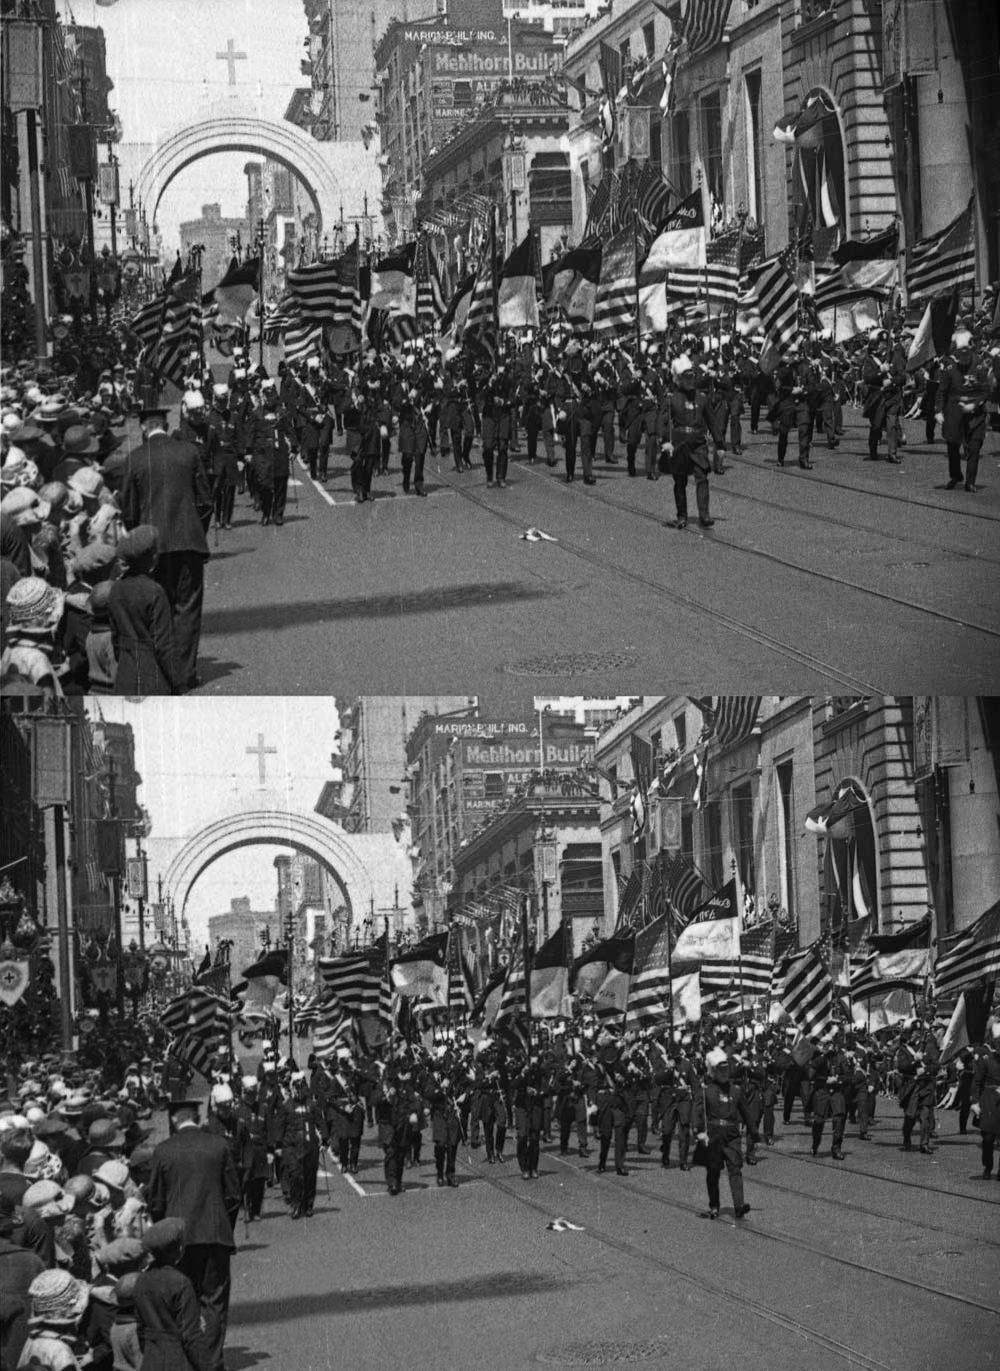 Seattle Now & Then: The Knights Templar take Seattle, 1925